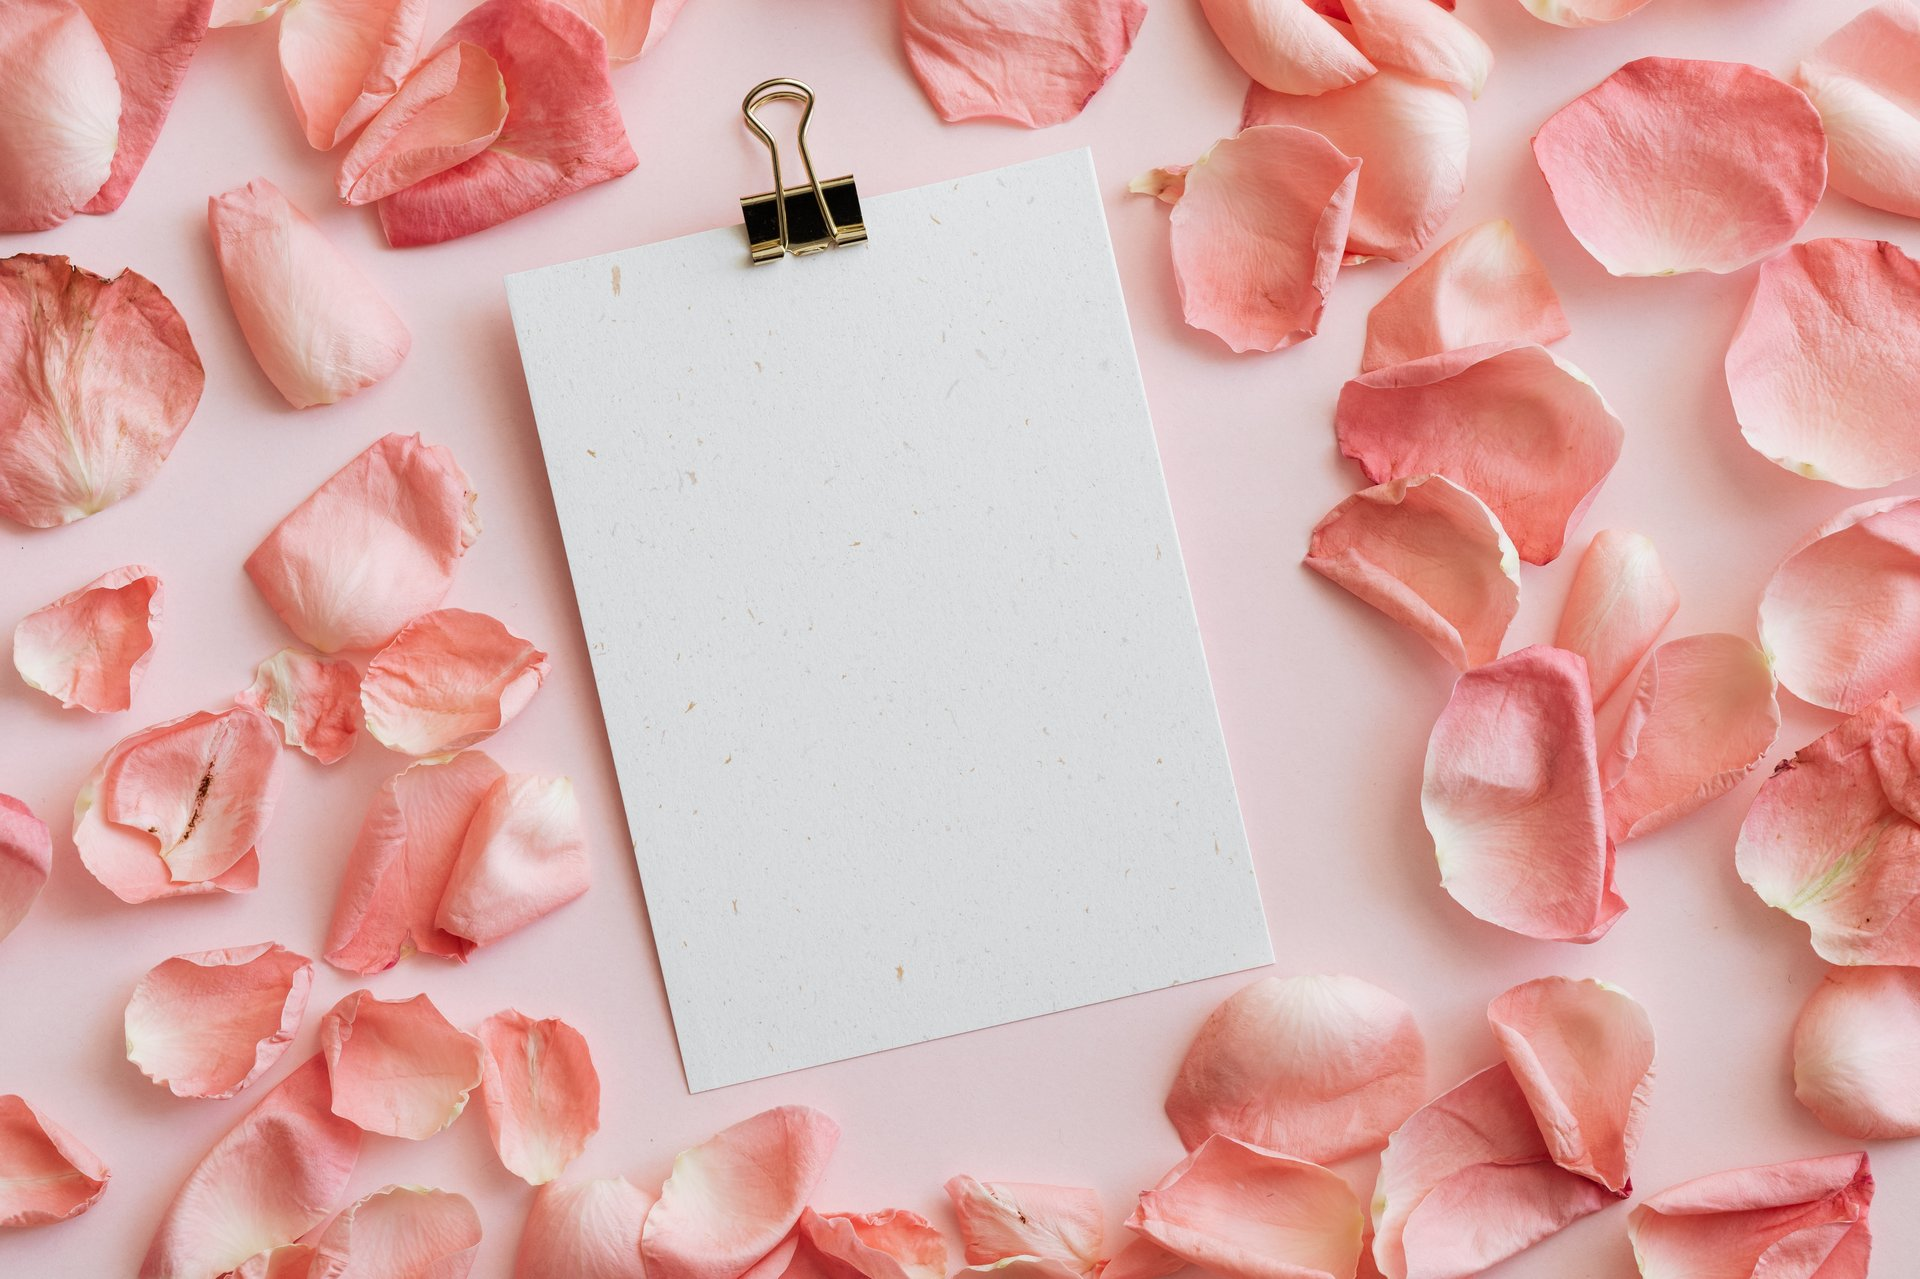 A blank sheet of paper with rose petals around it, inviting you to write your sexual wants on it.